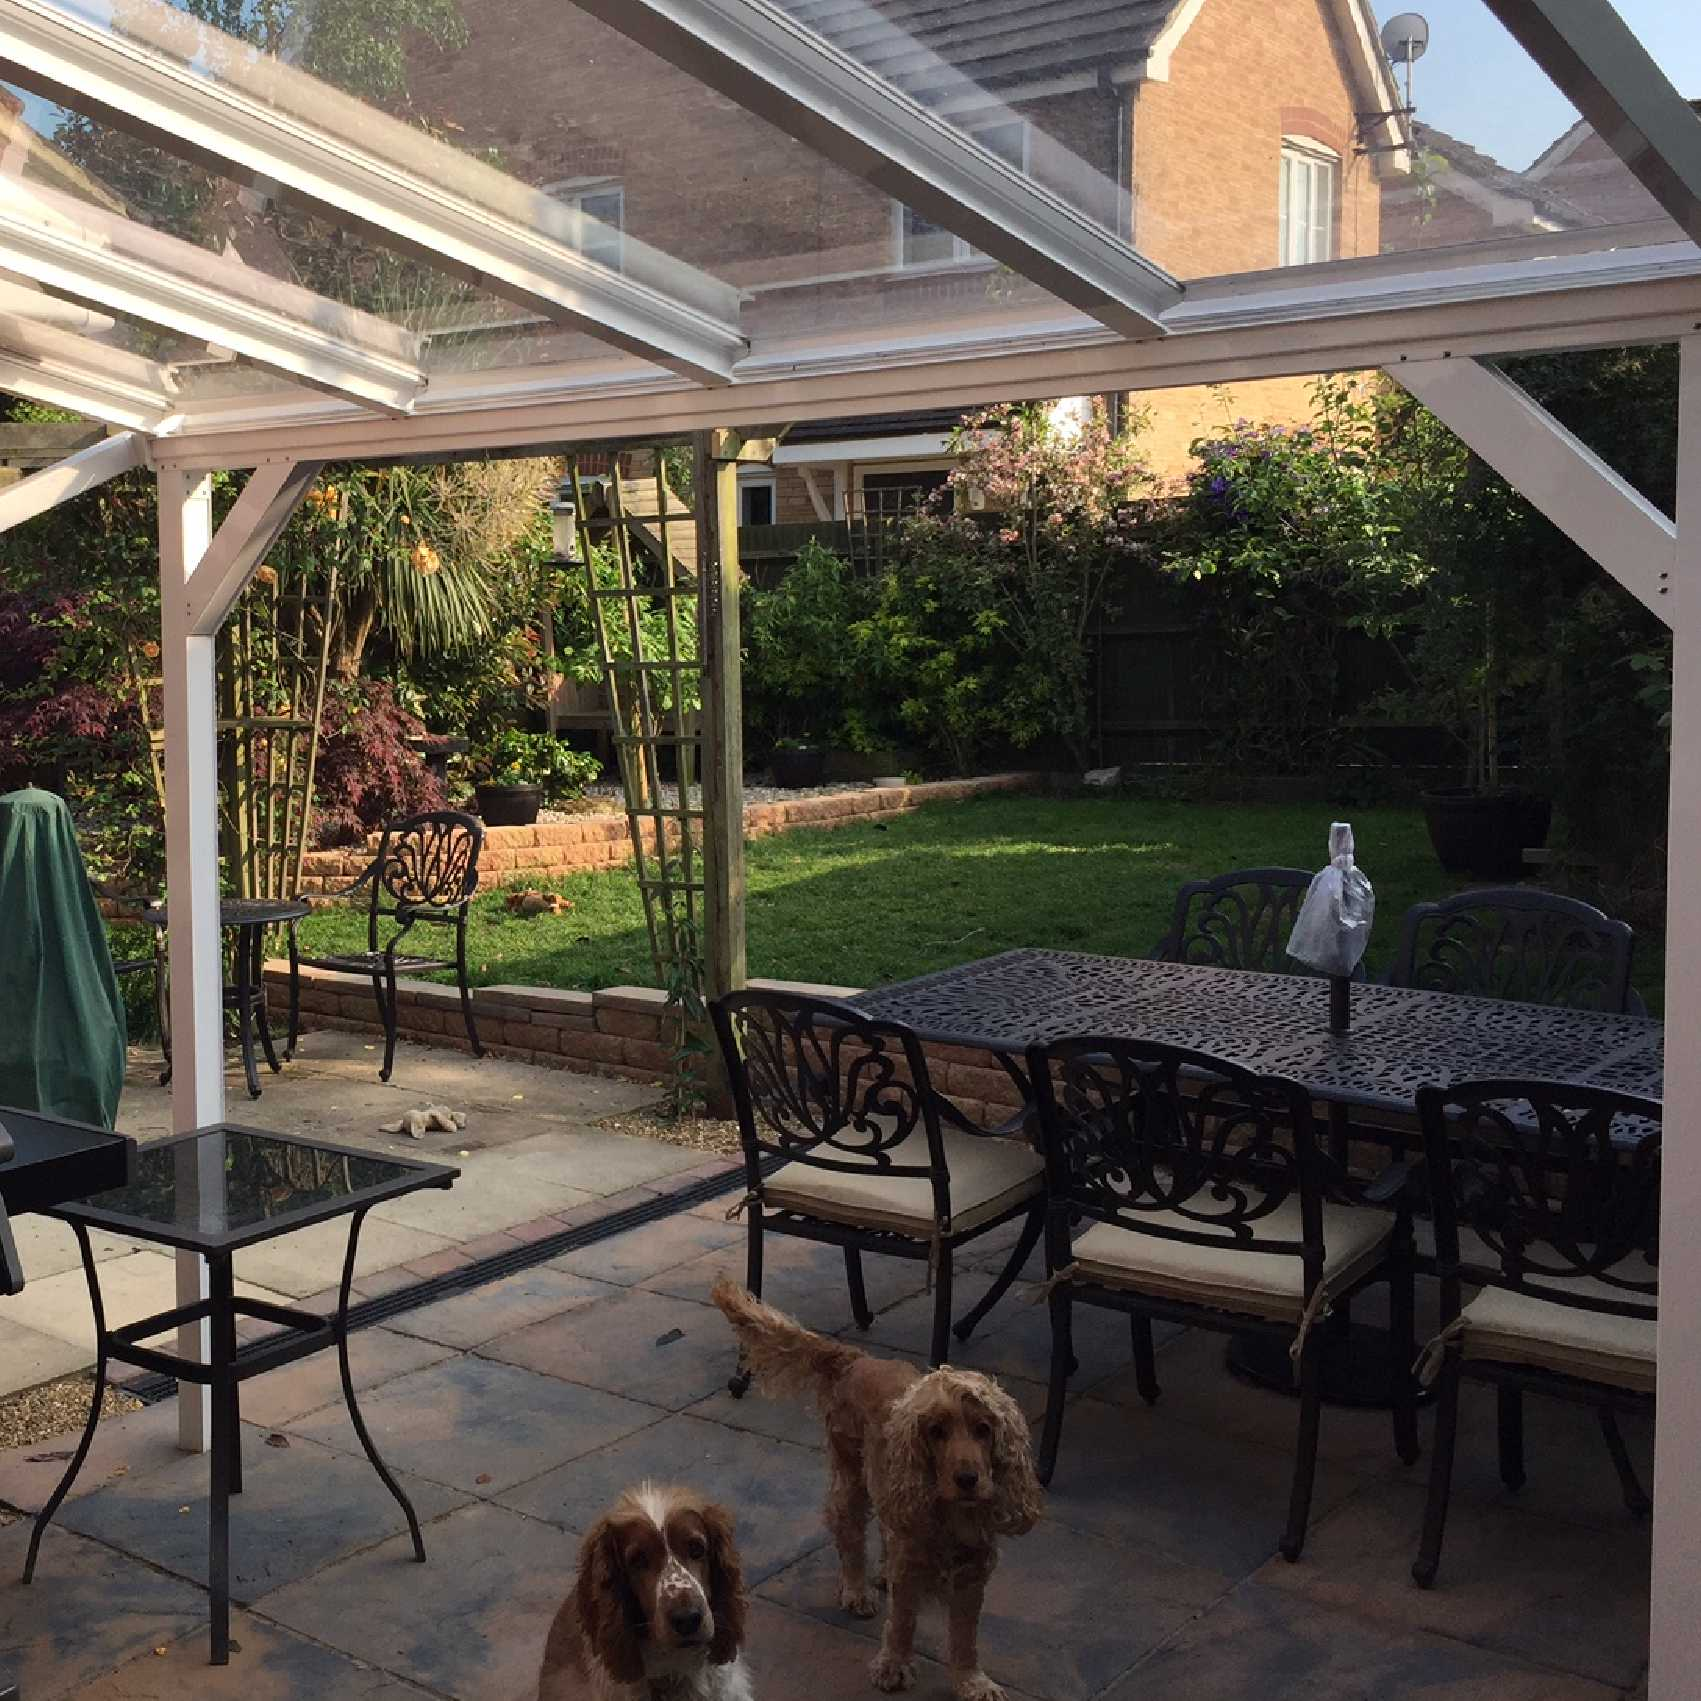 Affordable Omega Smart Lean-To Canopy with 6mm Glass Clear Plate Polycarbonate Glazing - 2.1m (W) x 1.5m (P), (2) Supporting Posts